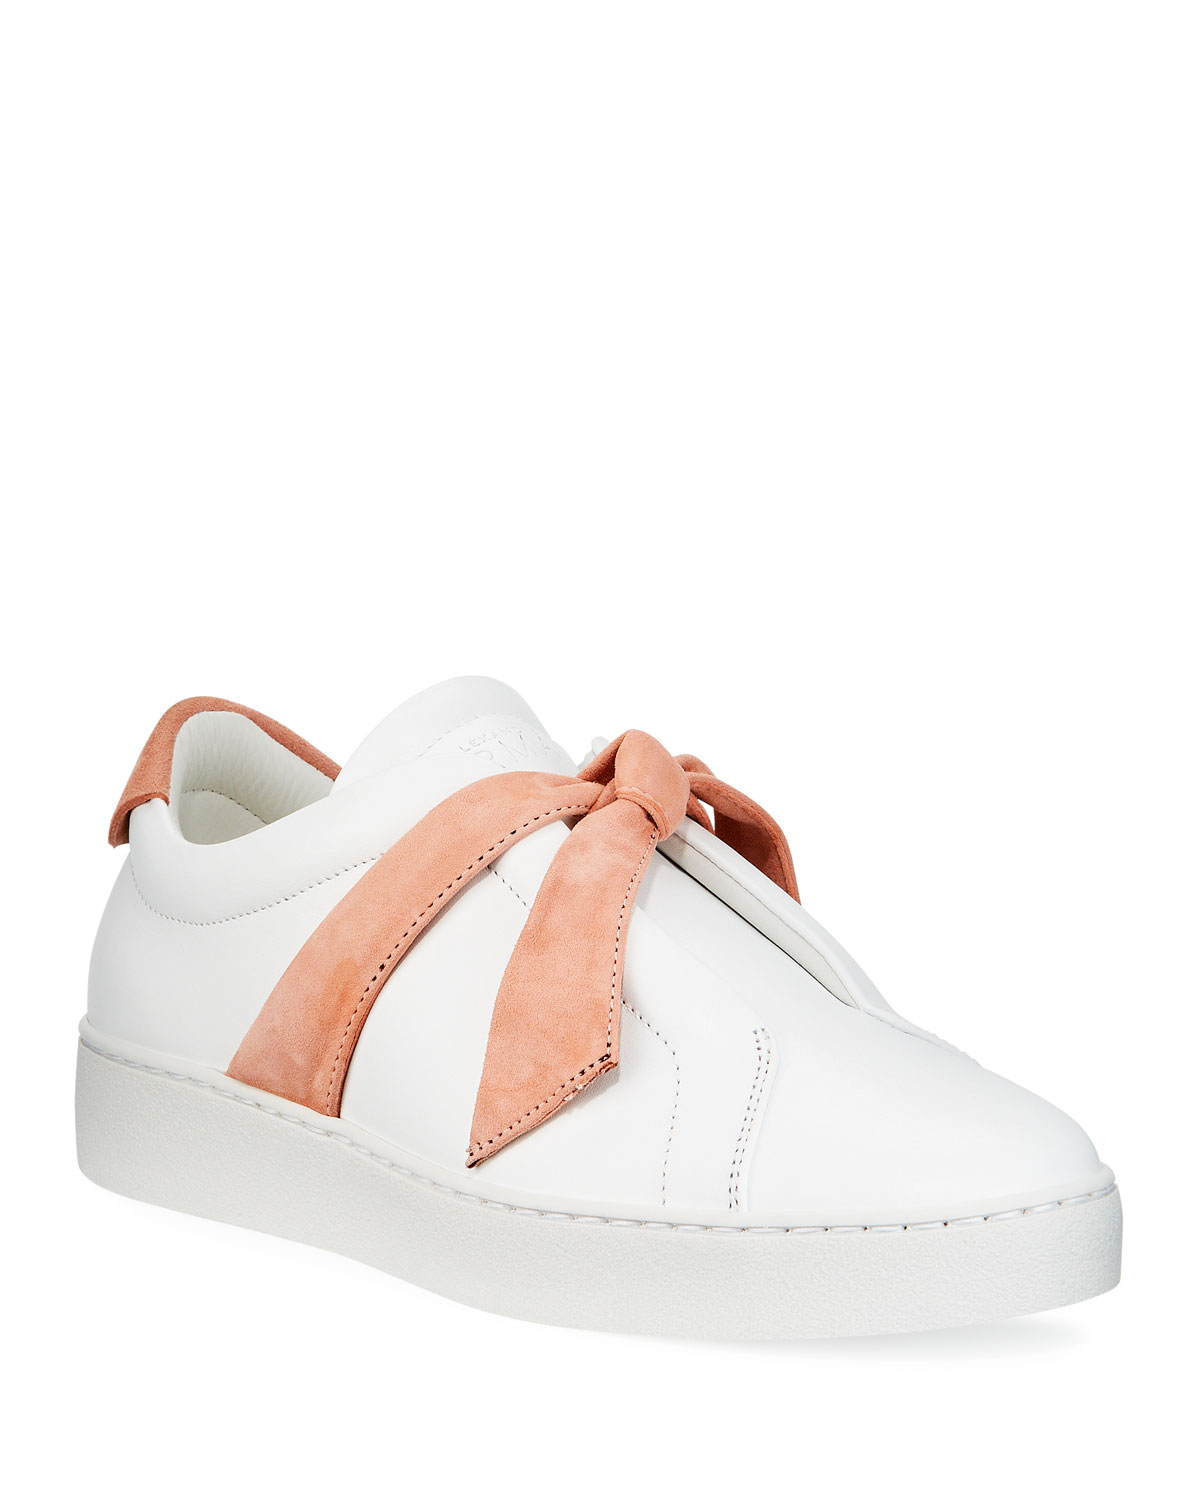 Clarita Two-Tone Sneakers, White/Pink